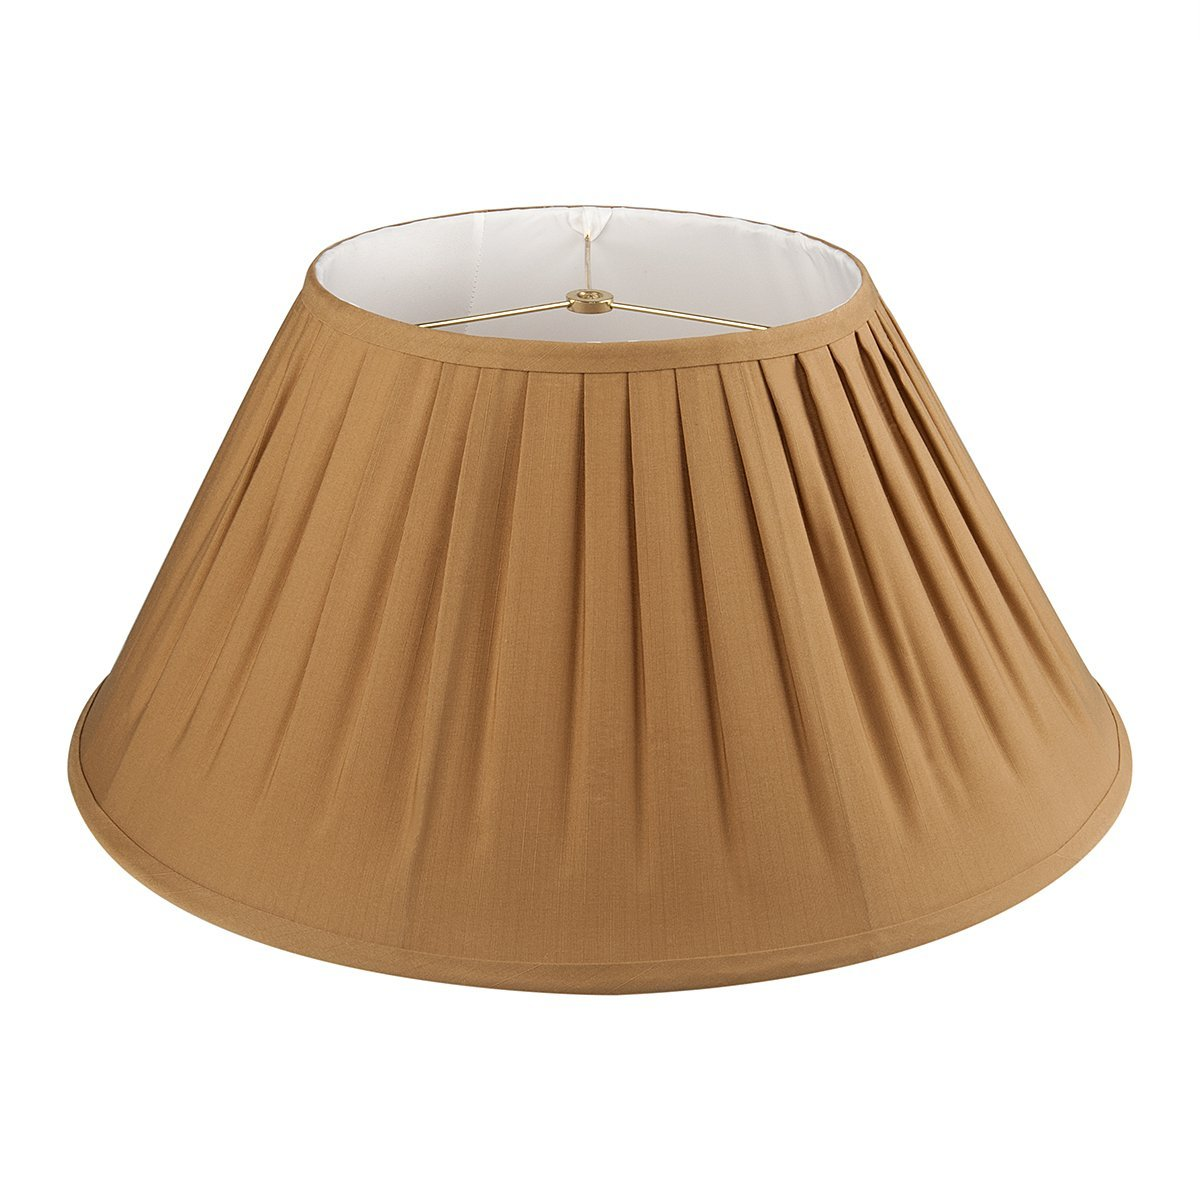 Mushroom pleats Farbic Covered spider fitting Lampshade, 10x20x9 inch Large Shade